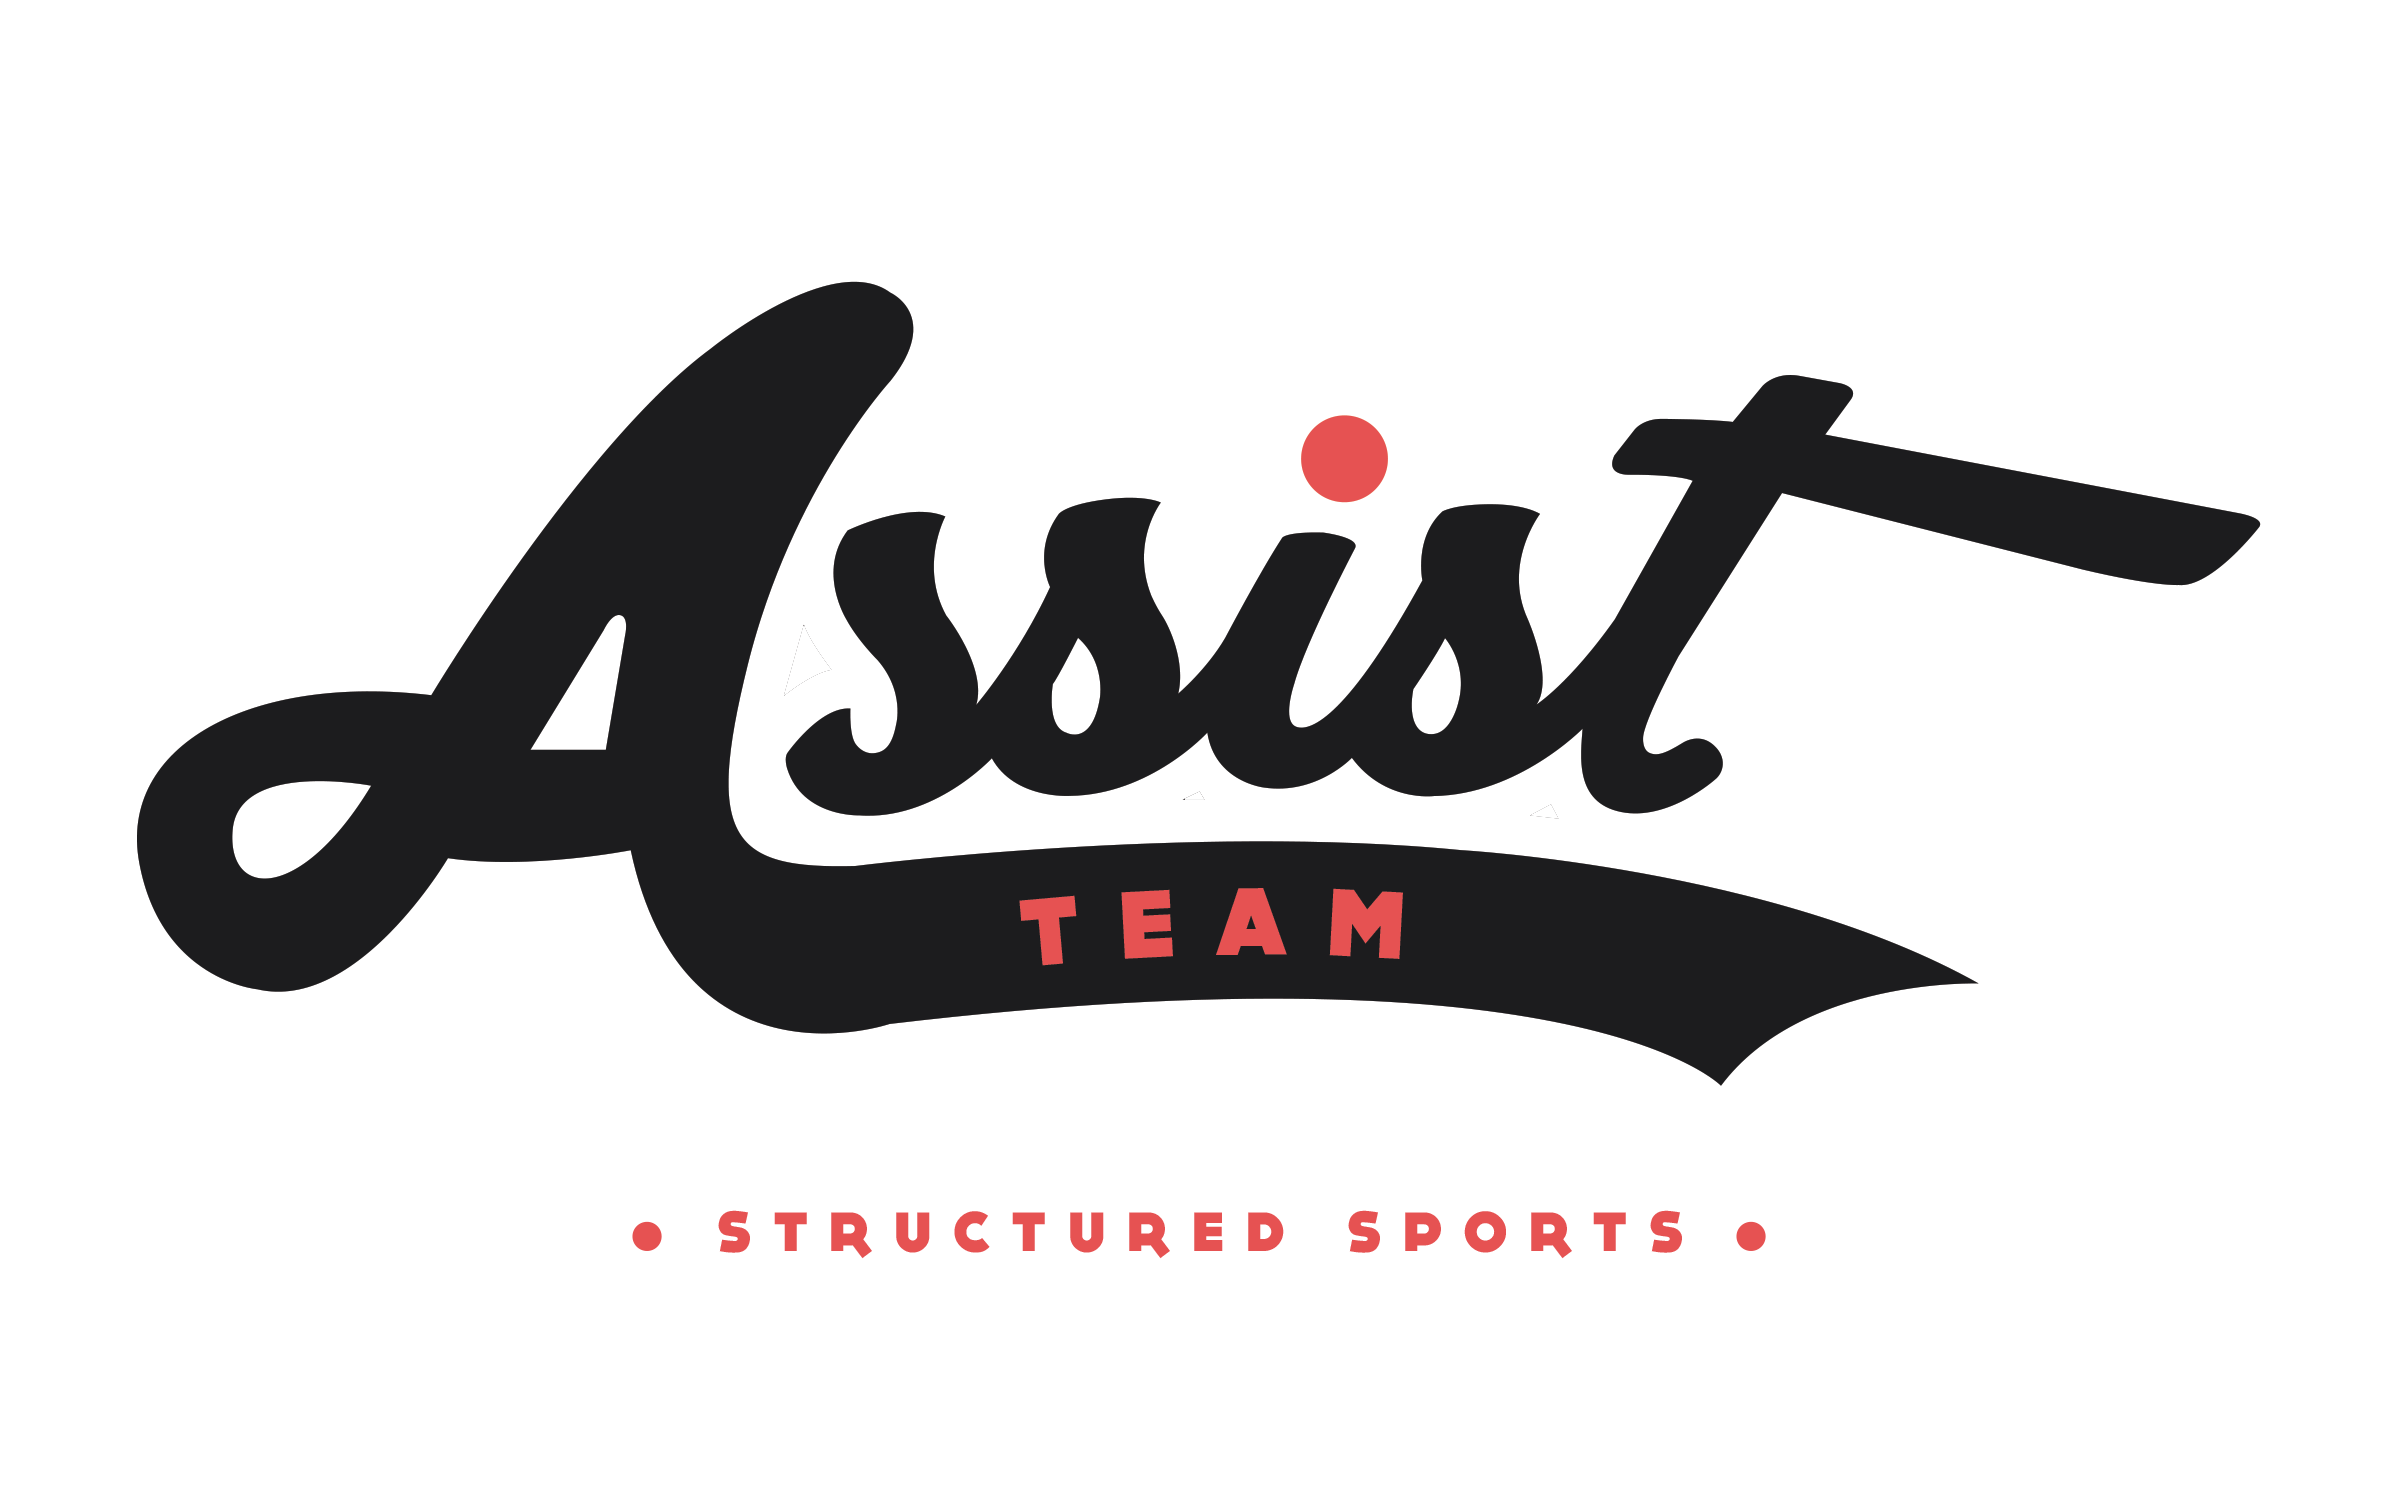 STRUCTURED SPORTS | ASSIST TEAM